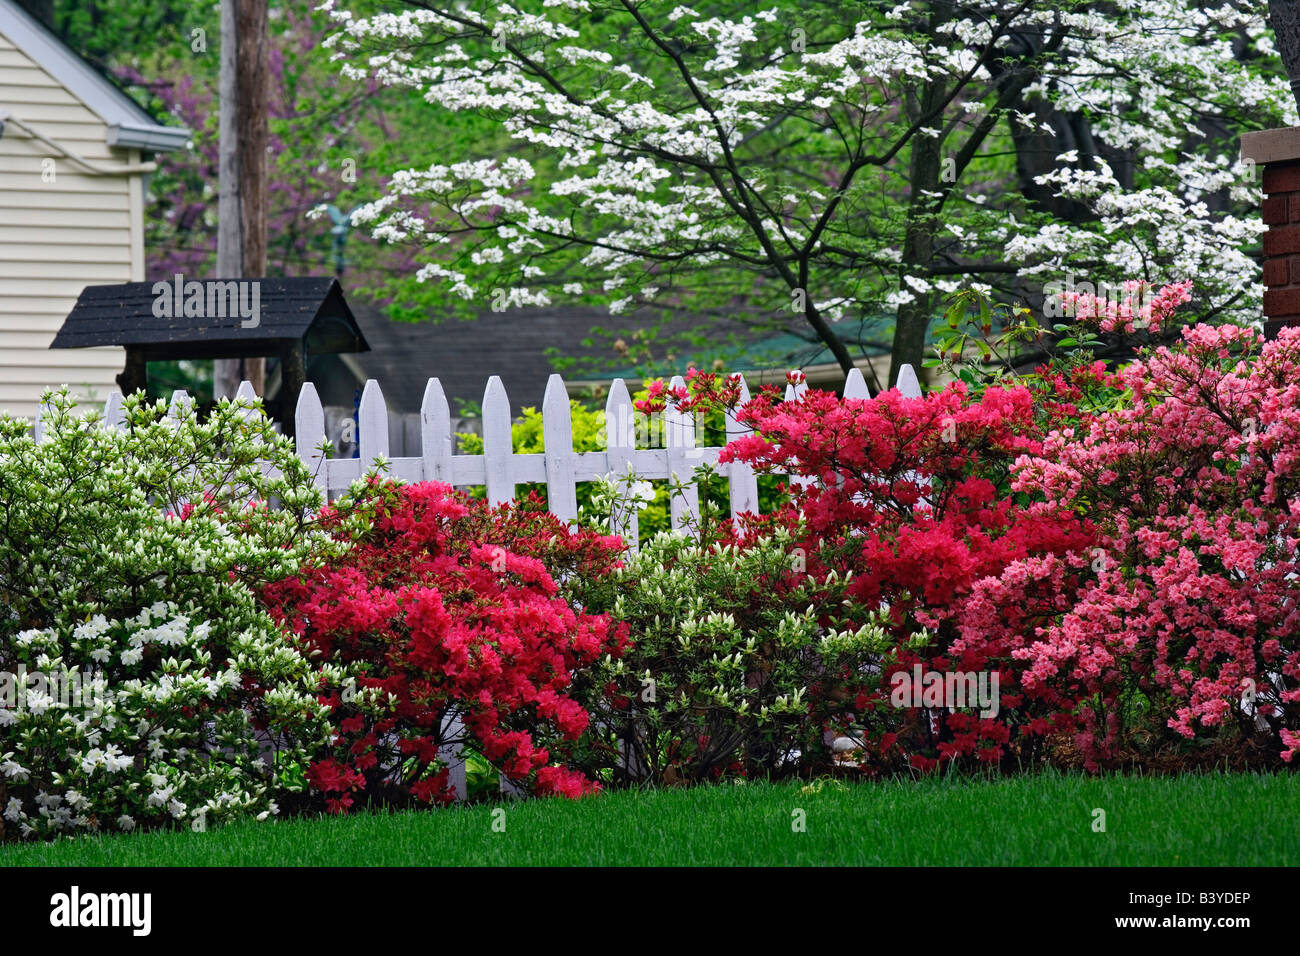 Pickett fence azaleas and flowering dogwood tree cornus florida pickett fence azaleas and flowering dogwood tree cornus florida audubon park neighborhood louisville kentucky baanklon Gallery